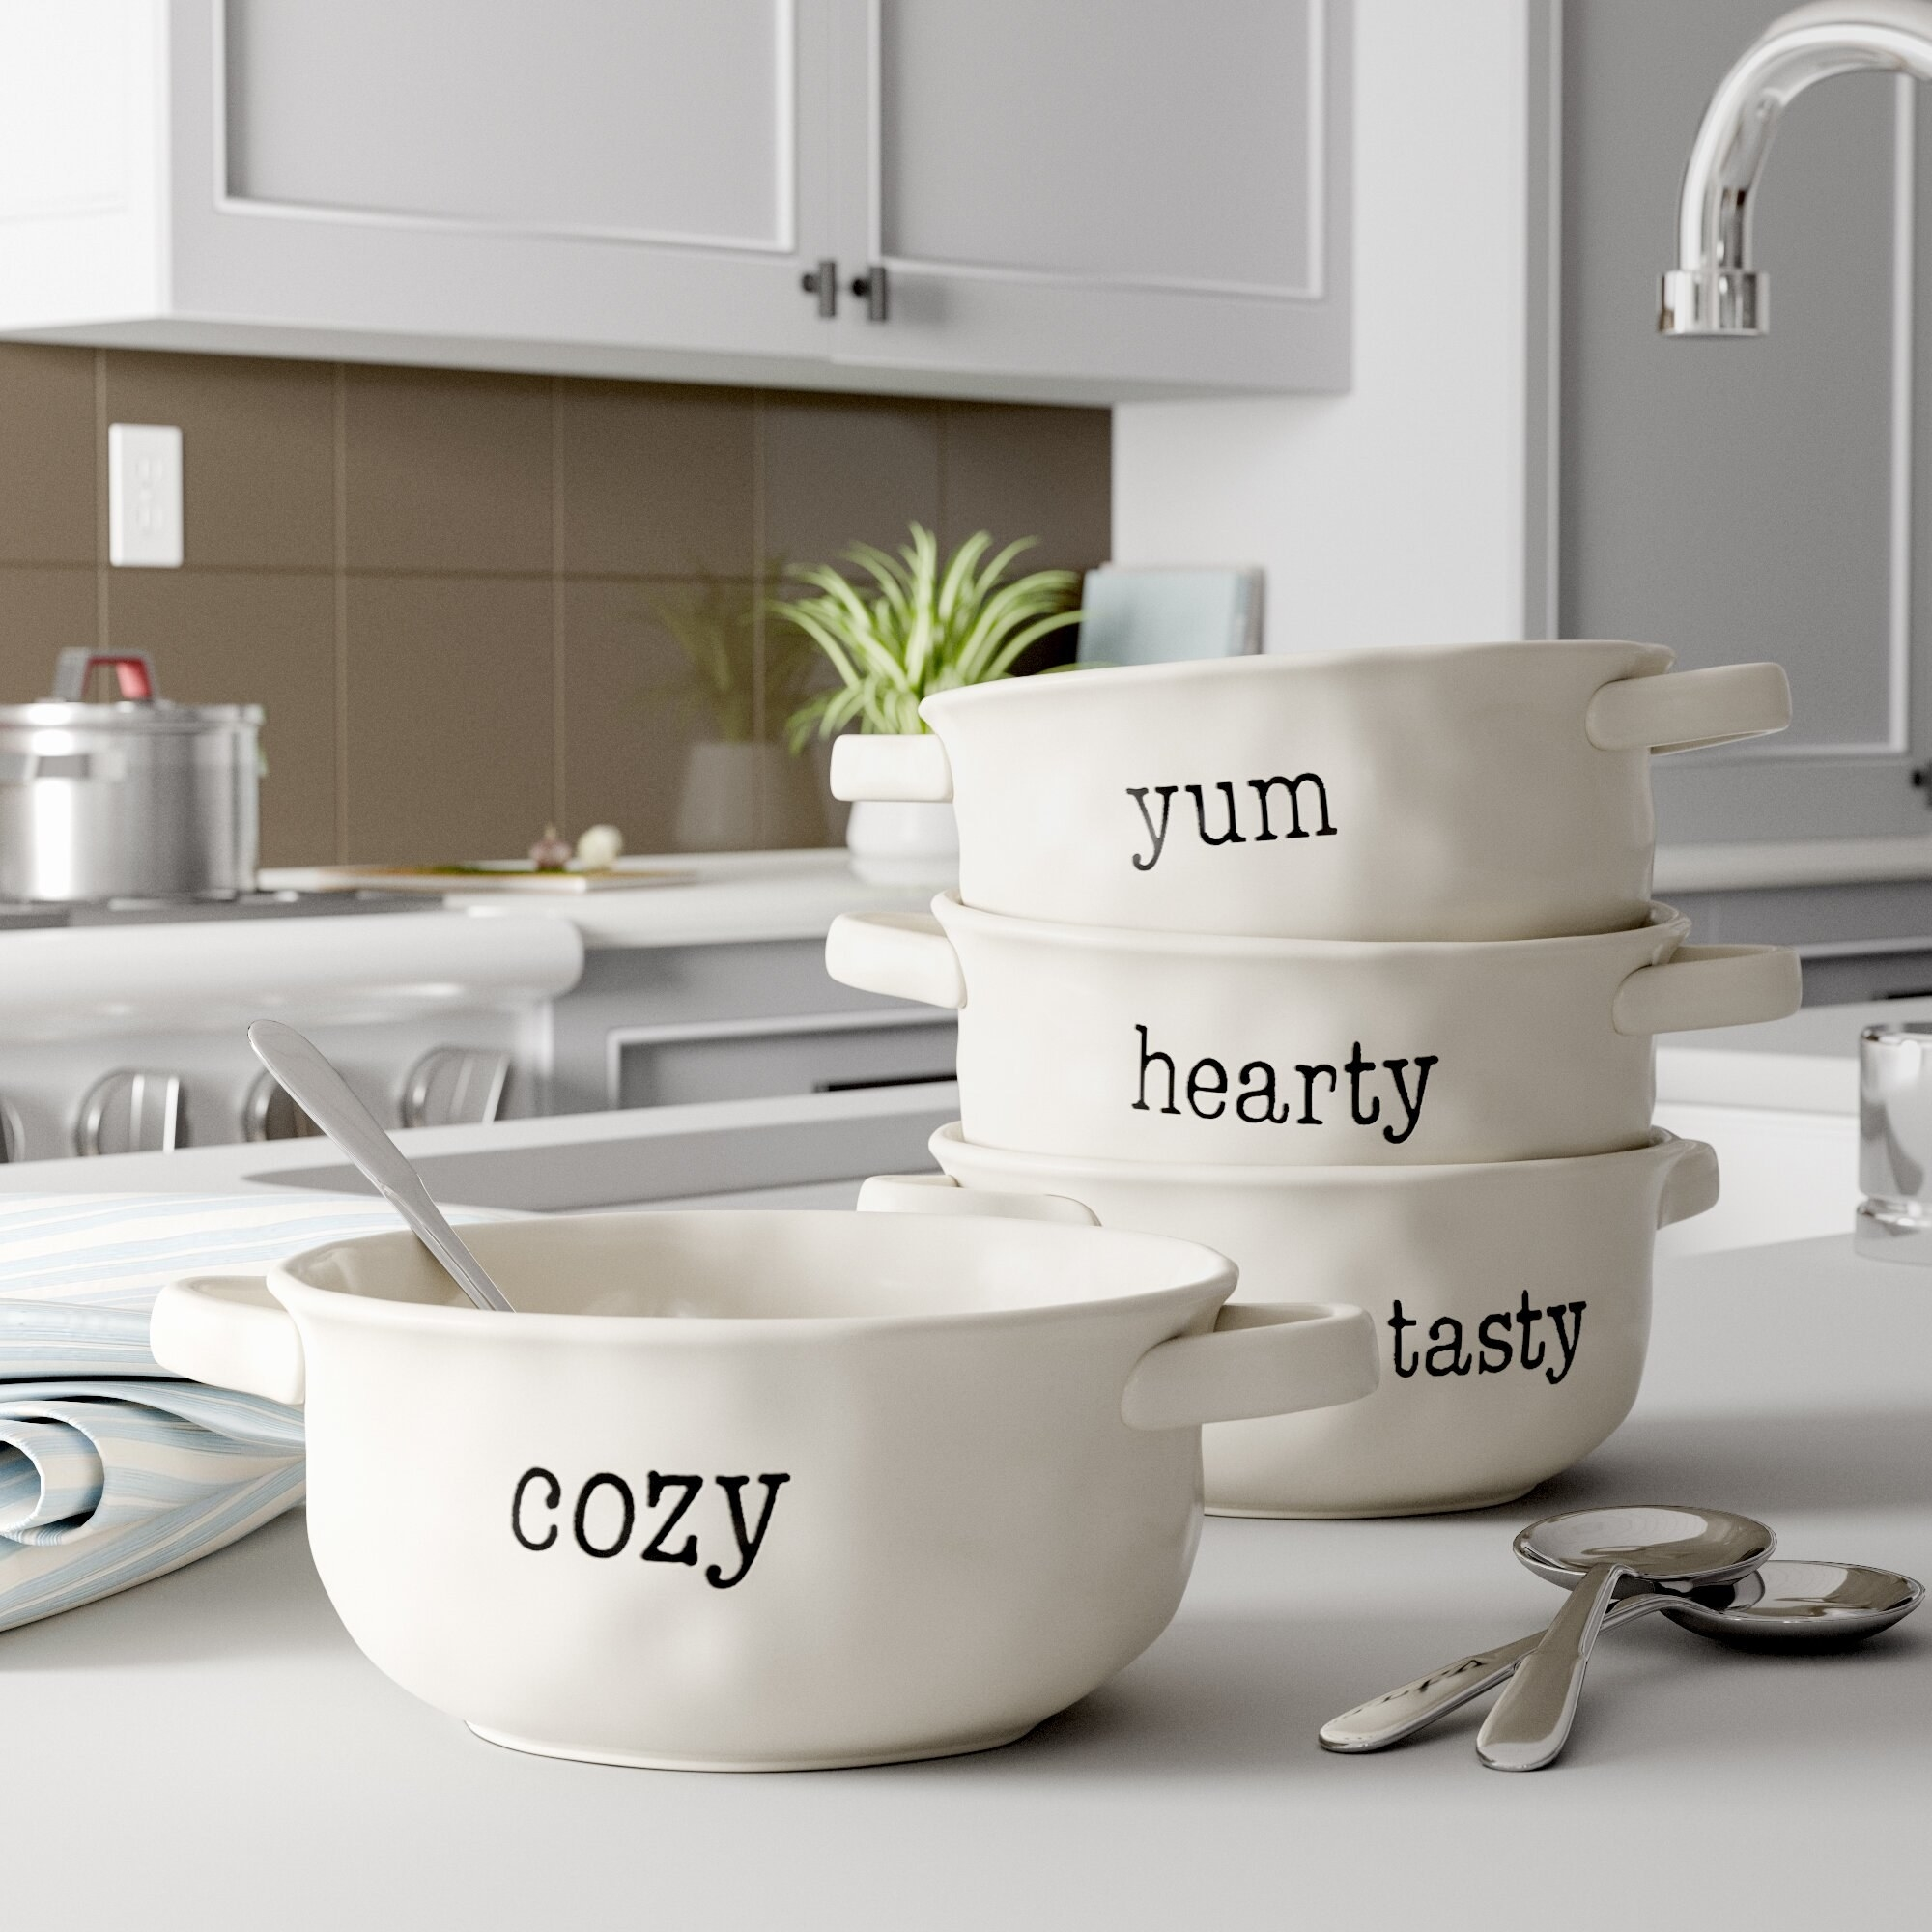 """the four white bowls with the words """"cozy,"""" """"yum,"""" """"hearty,"""" and """"tasty"""" engraved on them"""